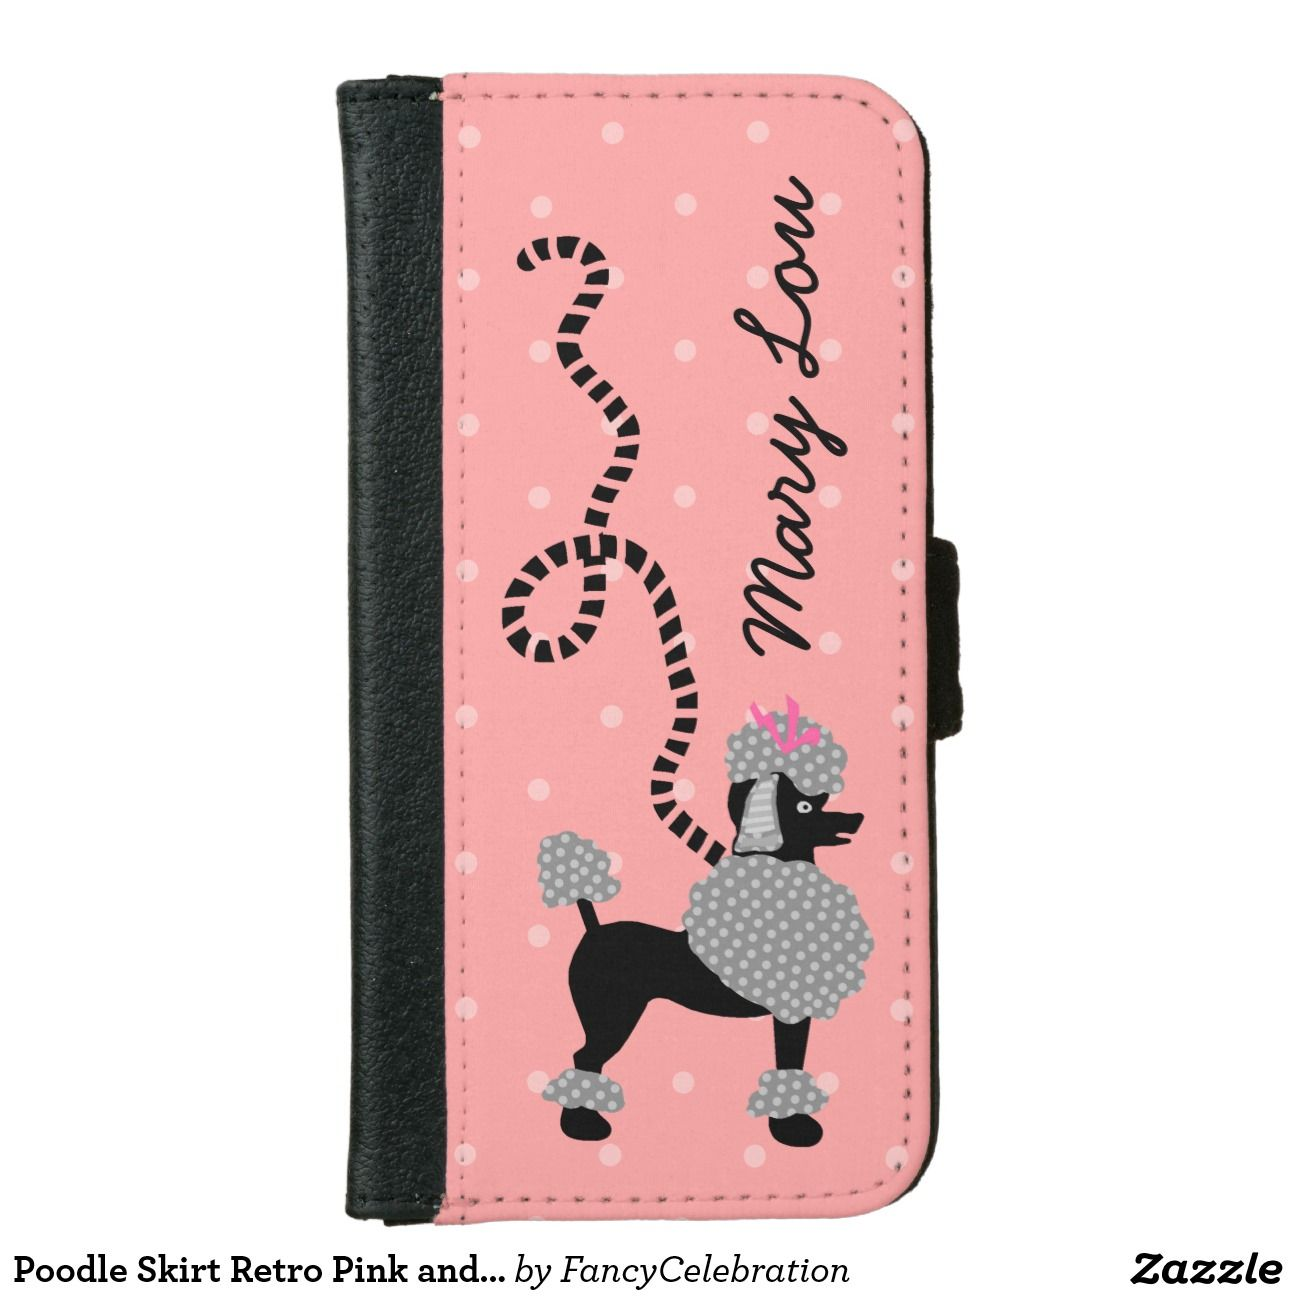 Poodle Skirt Retro Pink and Black 50s Personalized iPhone 6 Wallet Case